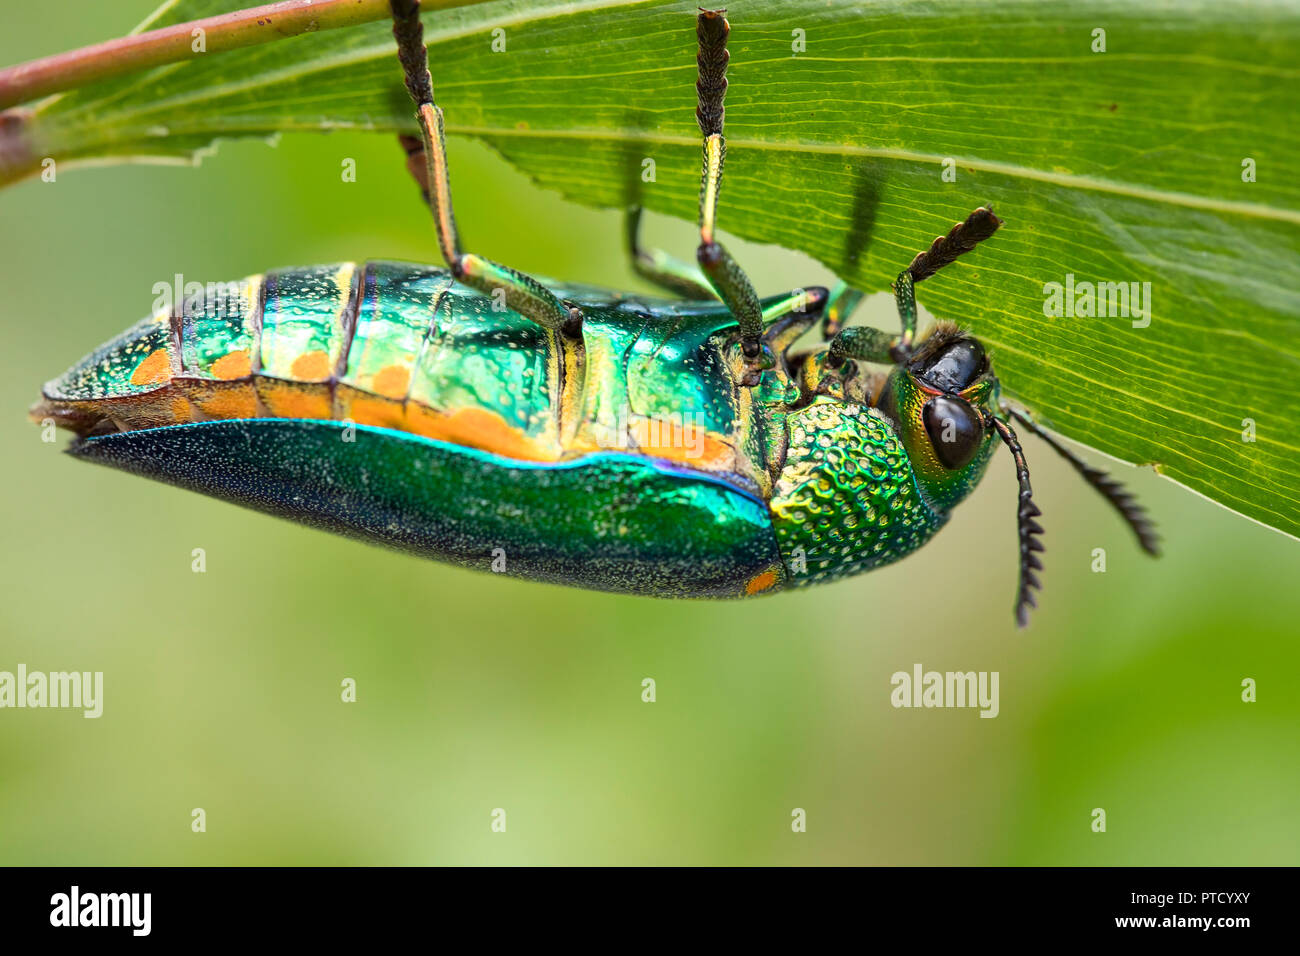 Jewel beetle (Buprestidae) feeds on a leave, Isaan, Thailand - Stock Image